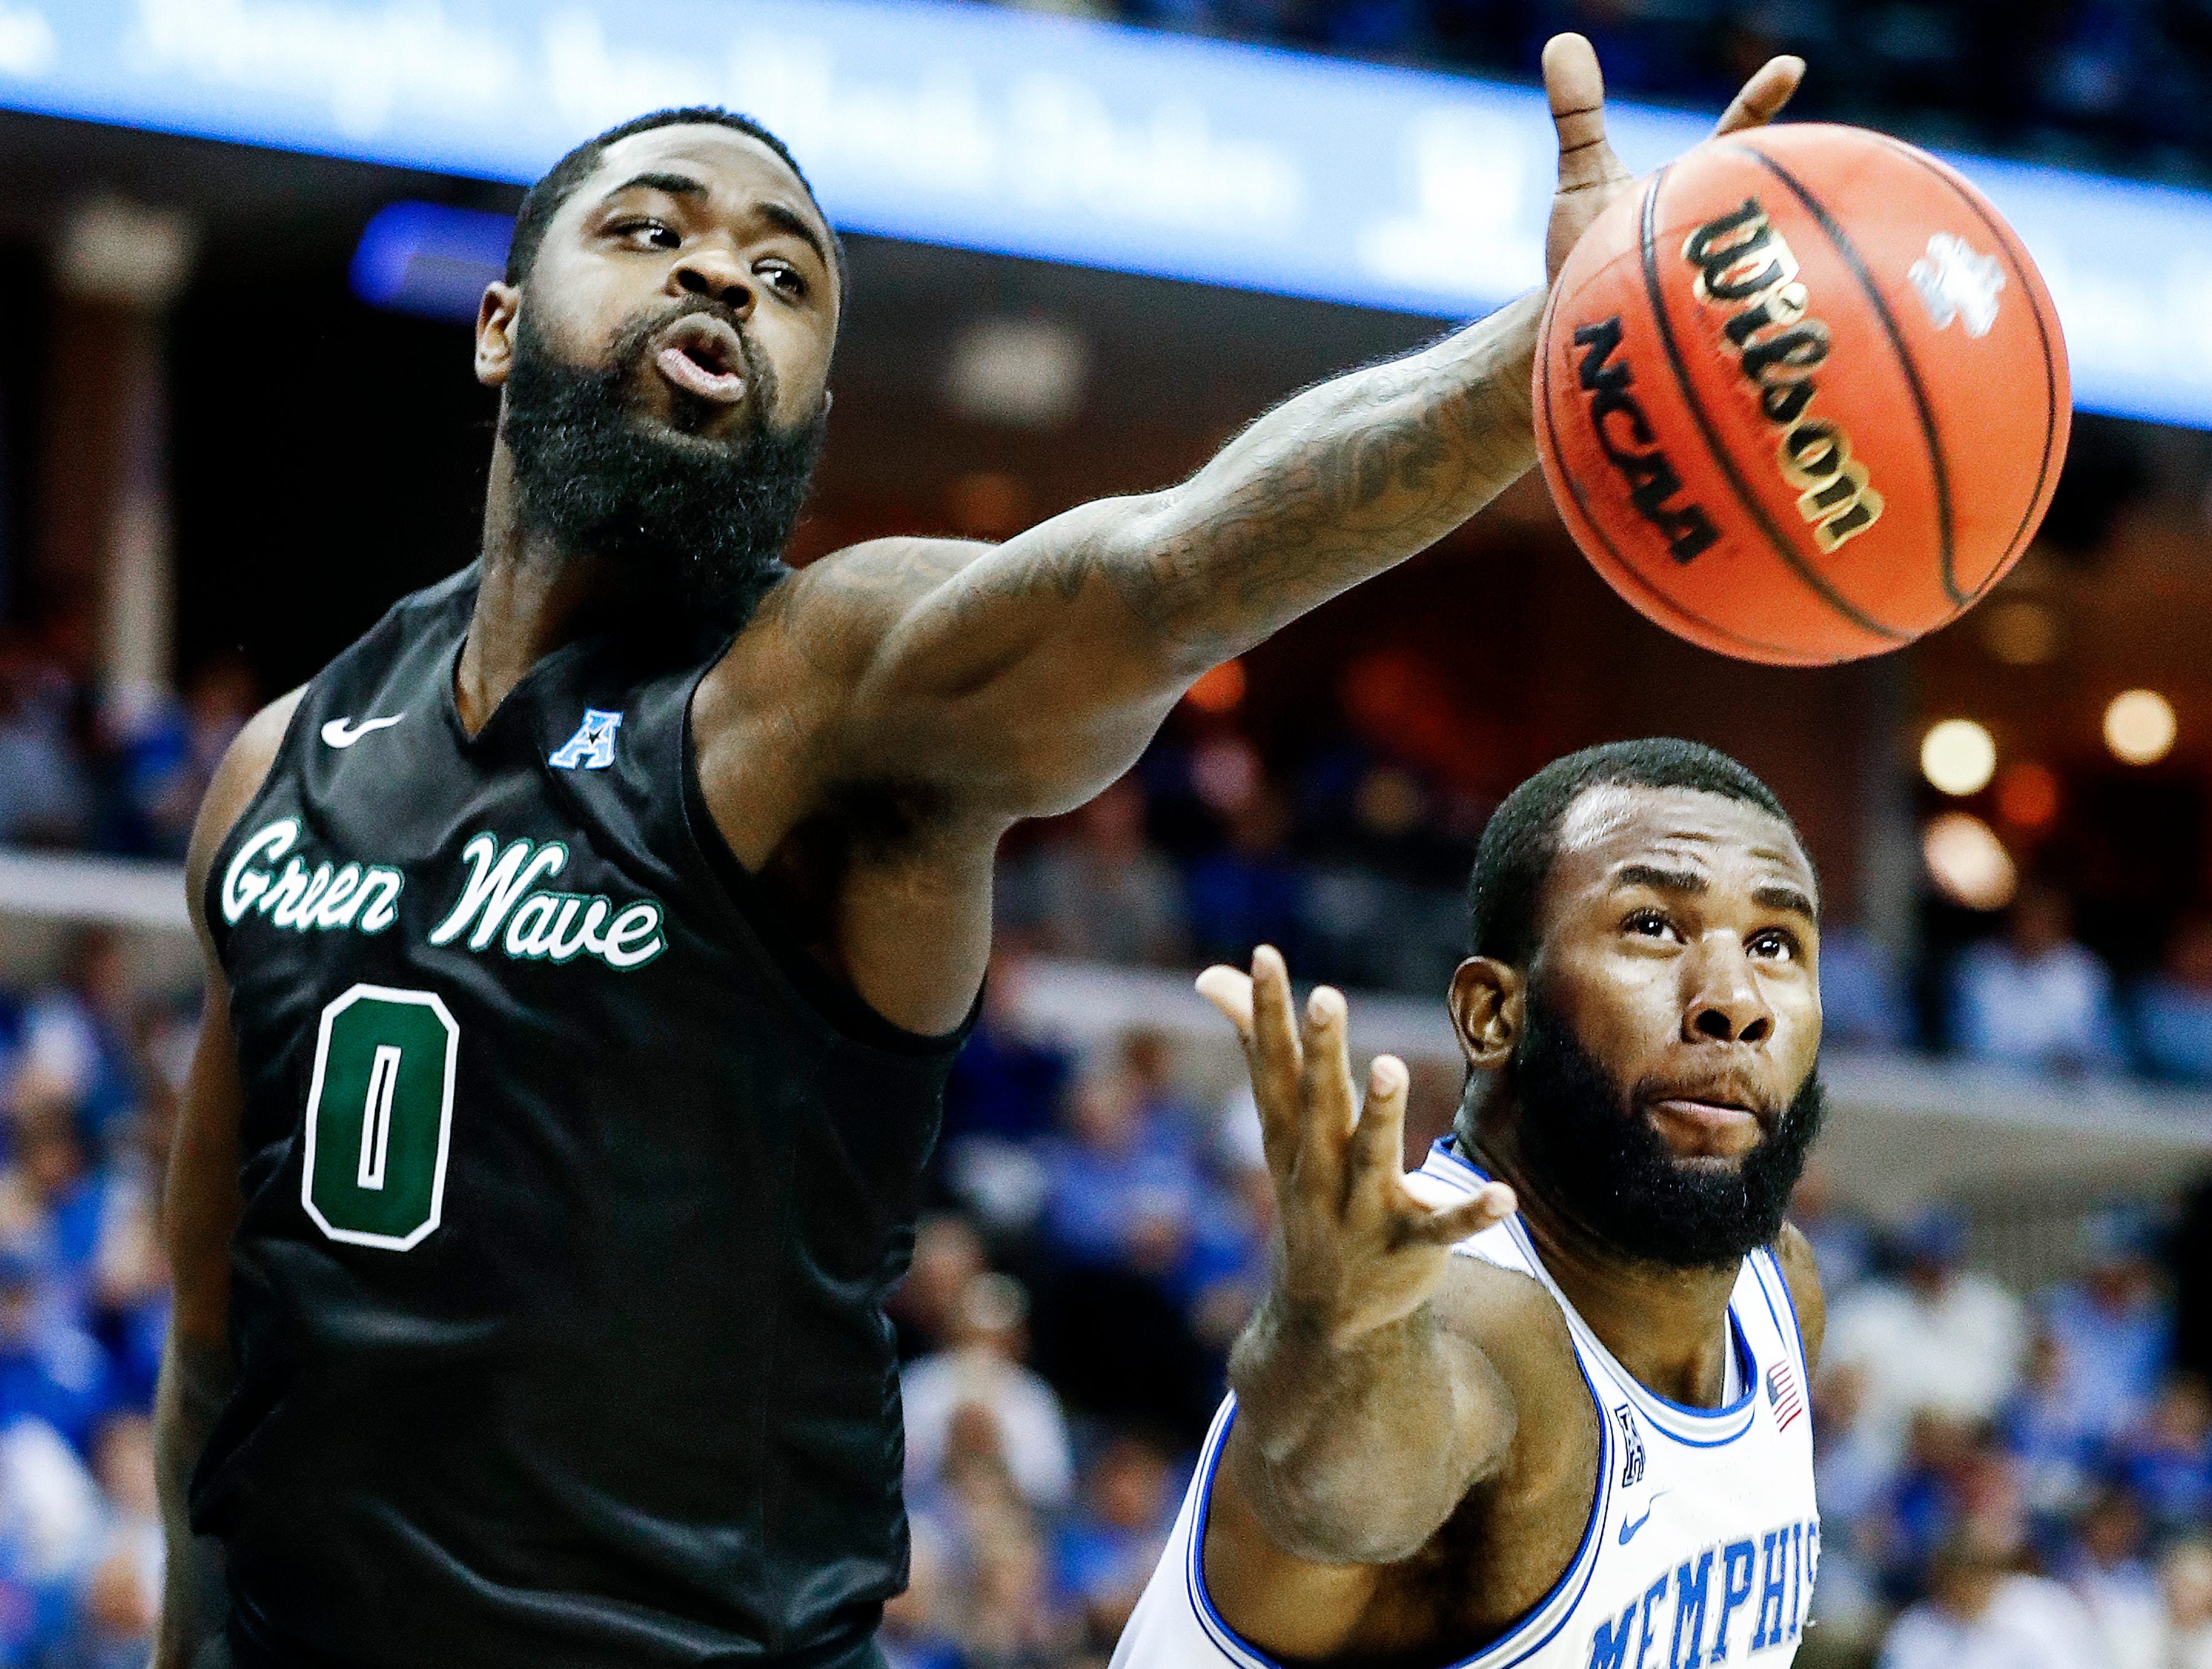 Memphis forward Raynere Thornton (right) battles Tulane defender Jordan Cornish (left) for a rebound during action of their first round AAC Tournament game at the  FedExForum, Thursday, March 14, 2019.